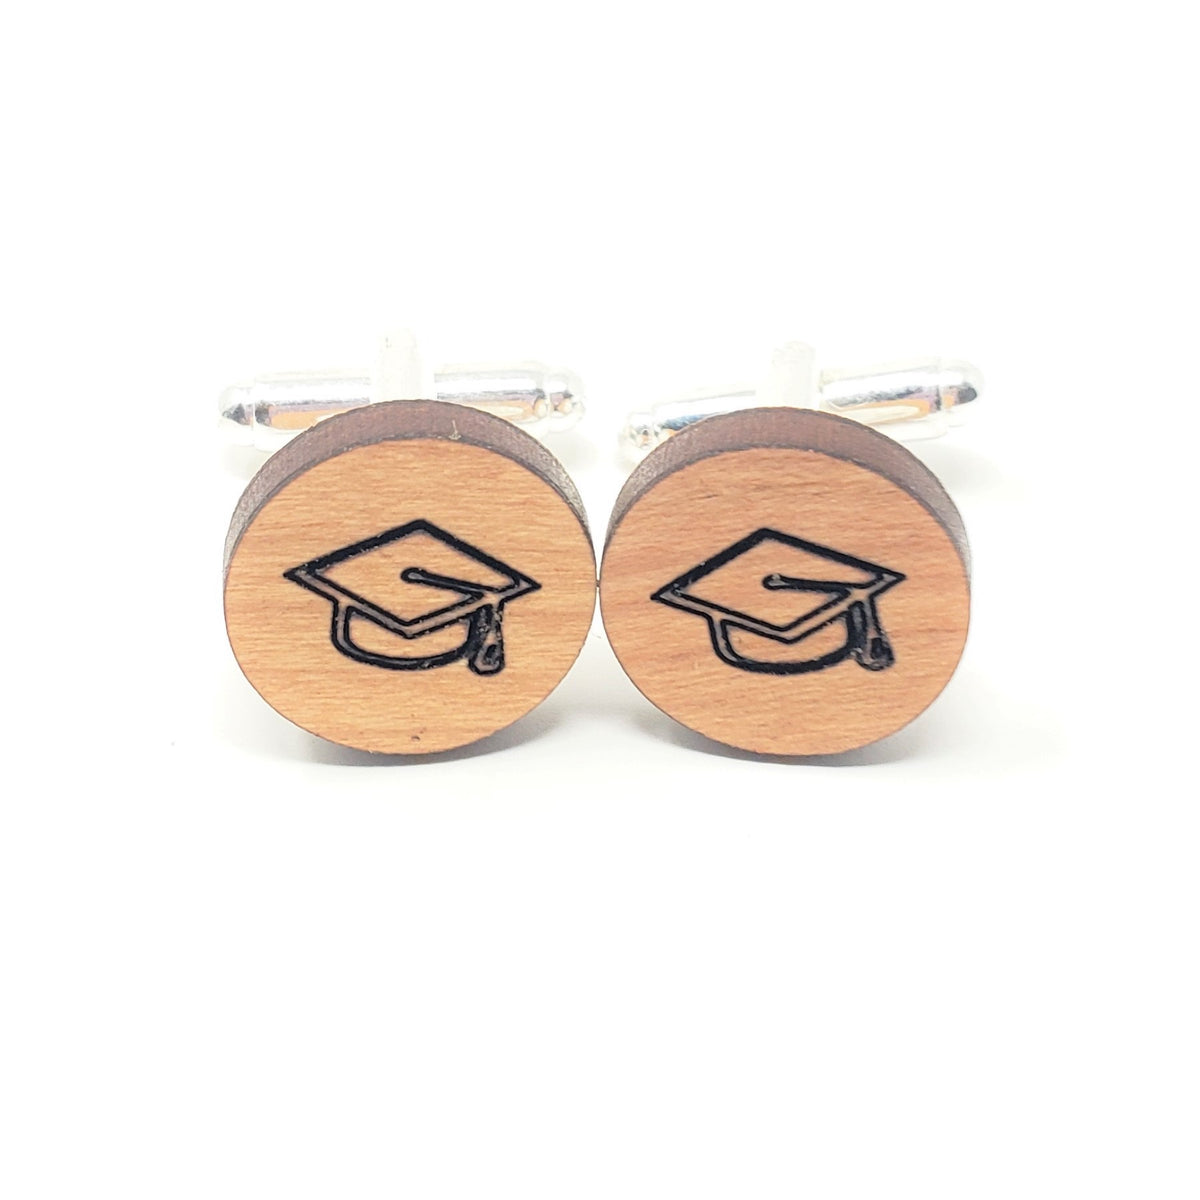 Graduation Hat Stainless and Wood Cufflinks